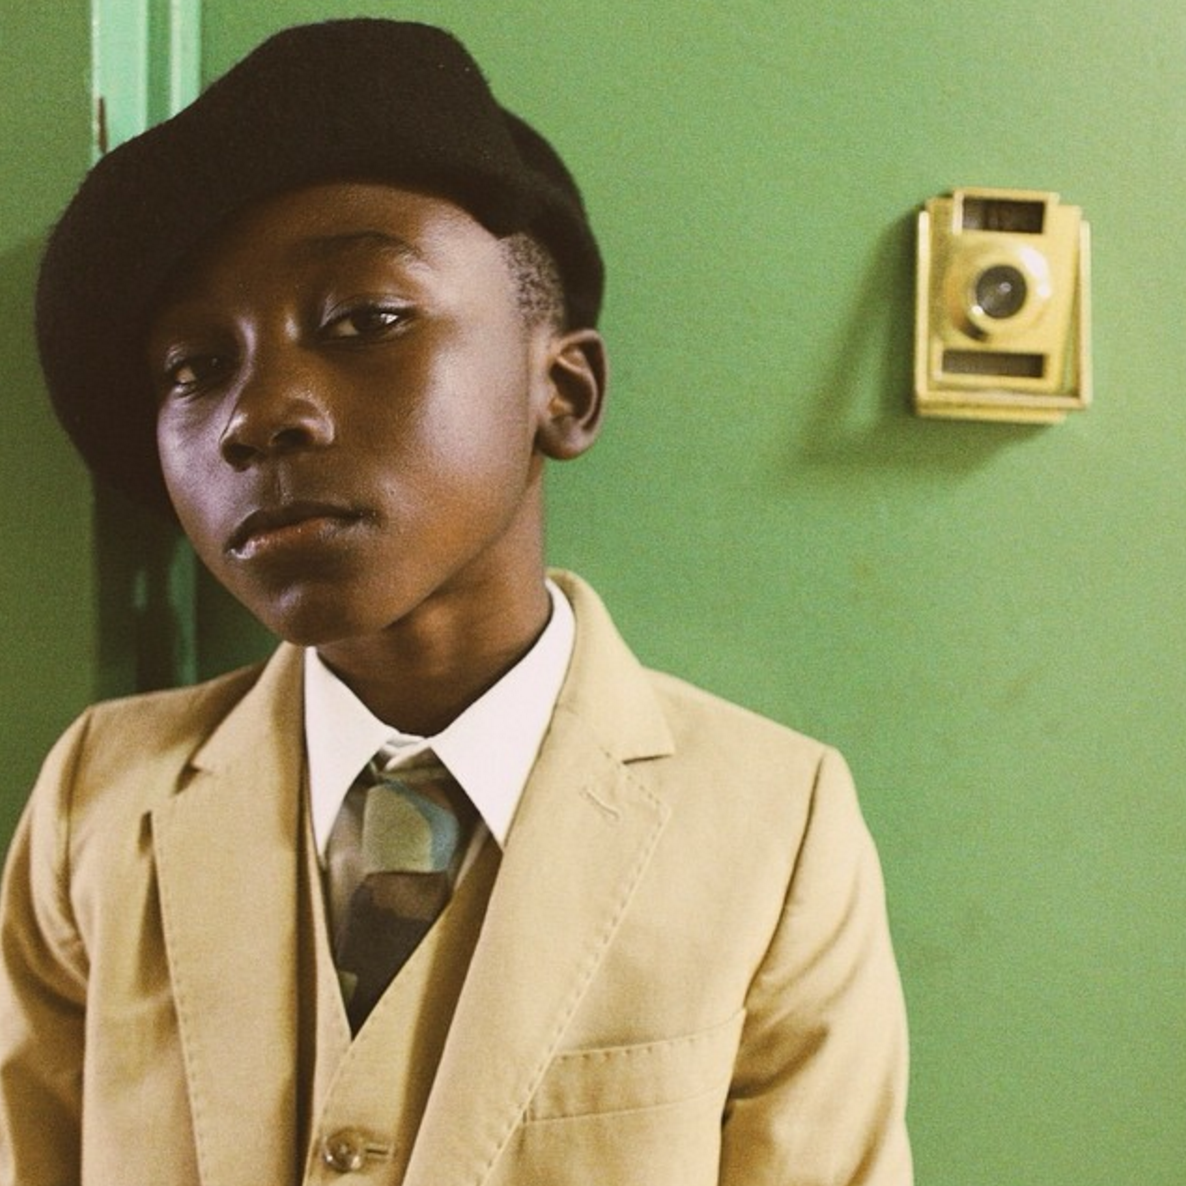 Screen Shot 2016-07-12 at 3.38.16 PM